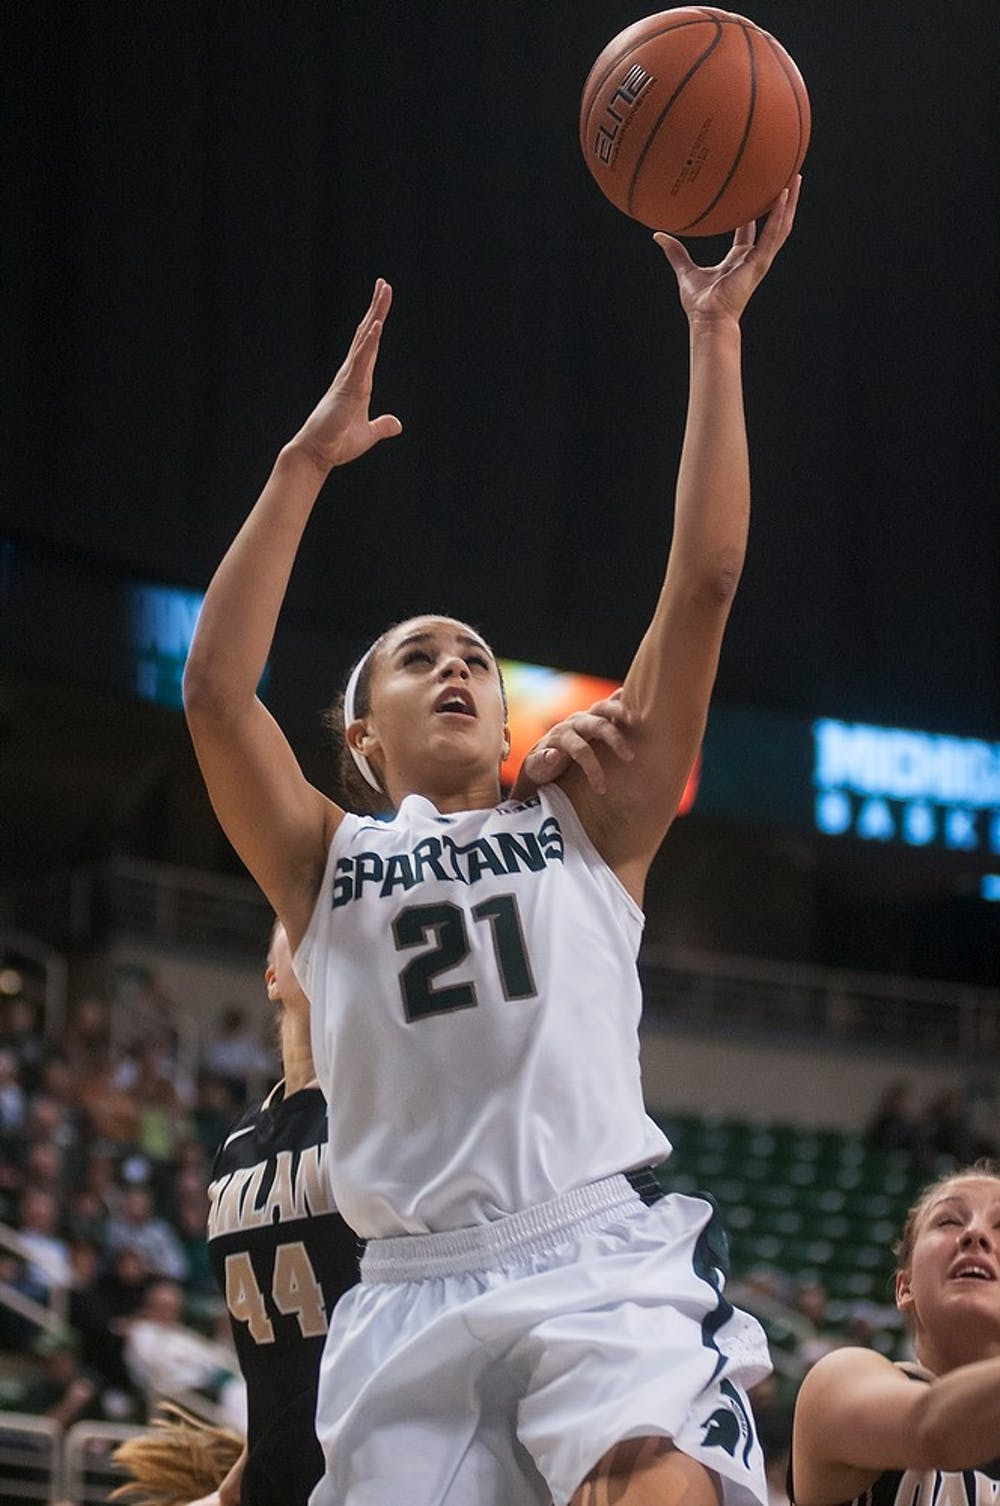 <p>Senior guard Klarissa Bell goes up for a shot during the game against Oakland on Dec. 15, 2013, at Breslin Center. The Spartans defeated the Grizzlies, 80-62. Danyelle Morrow/The State News</p>